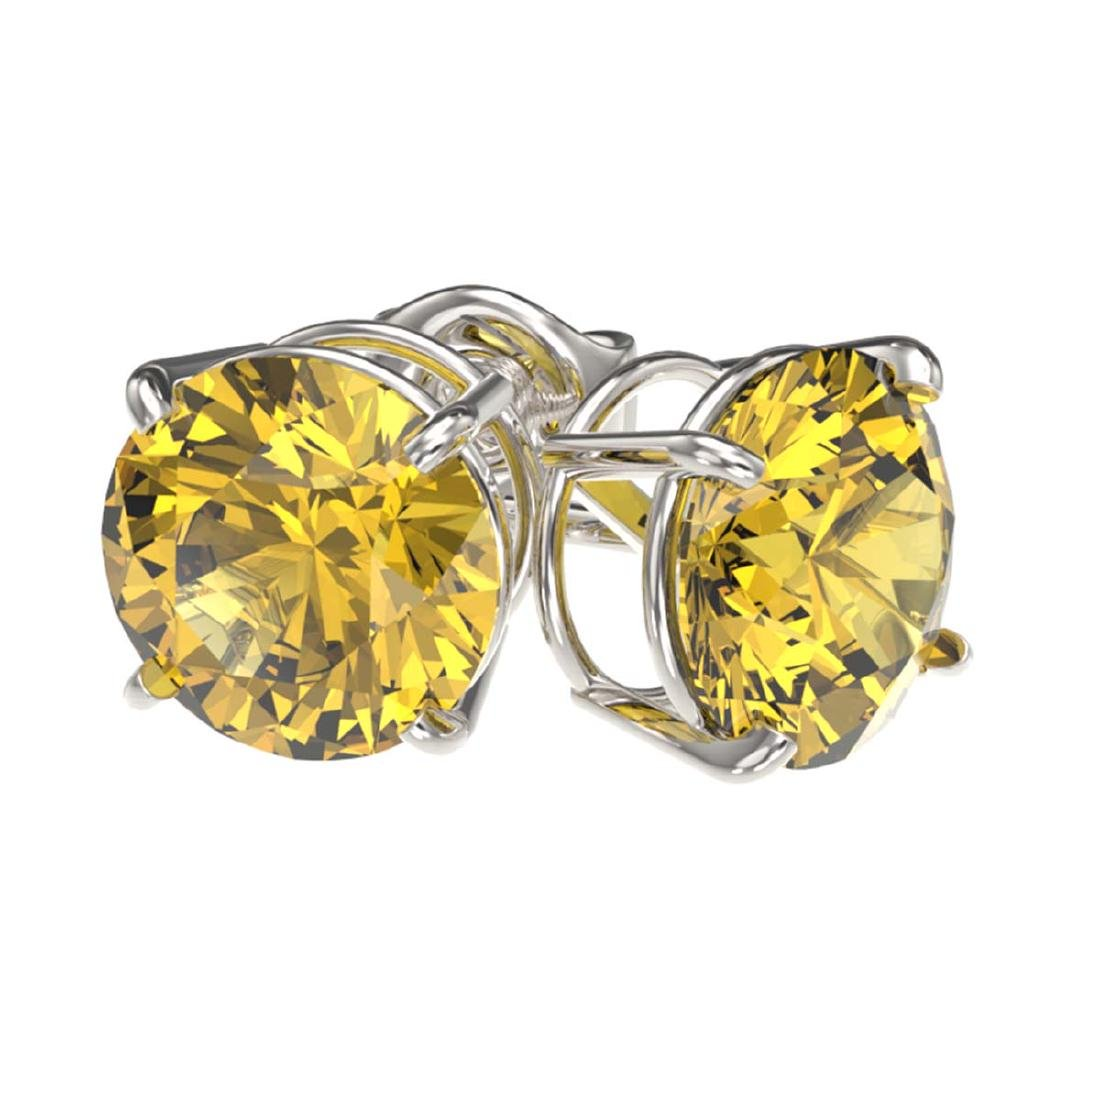 2 ctw Intense Yellow Diamond Stud Earrings 10K White - 3